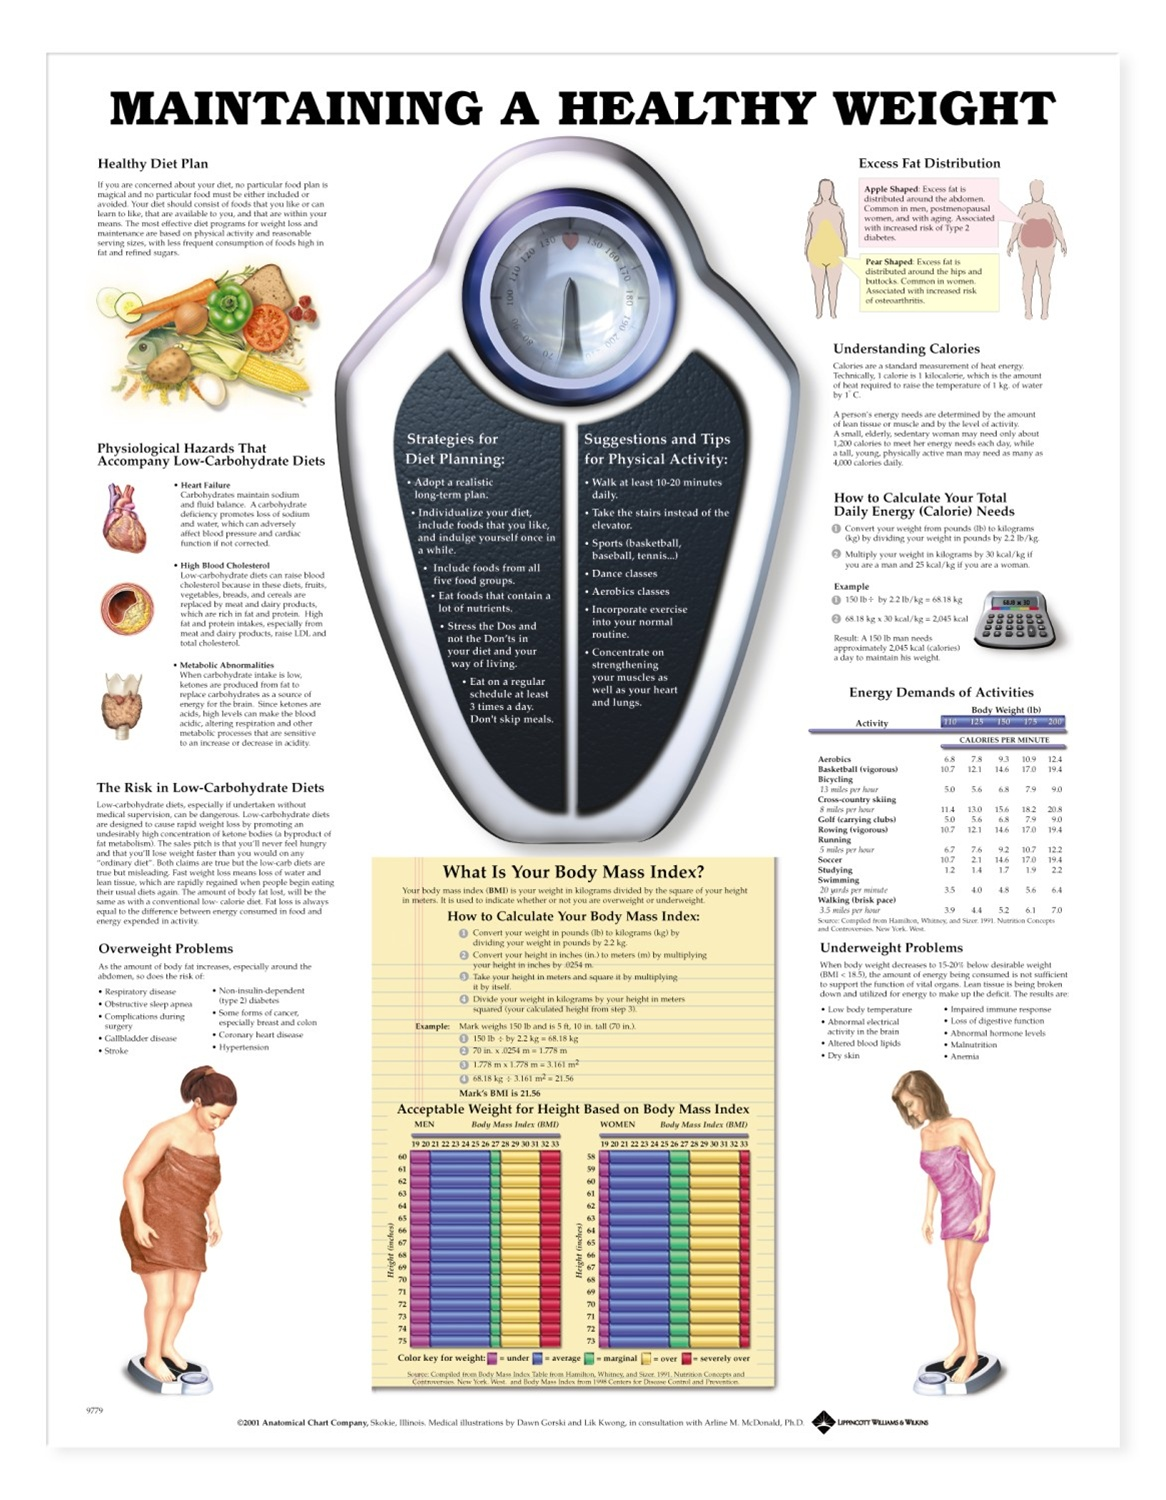 Communication on this topic: How to Maintain a Healthy Weight, how-to-maintain-a-healthy-weight/